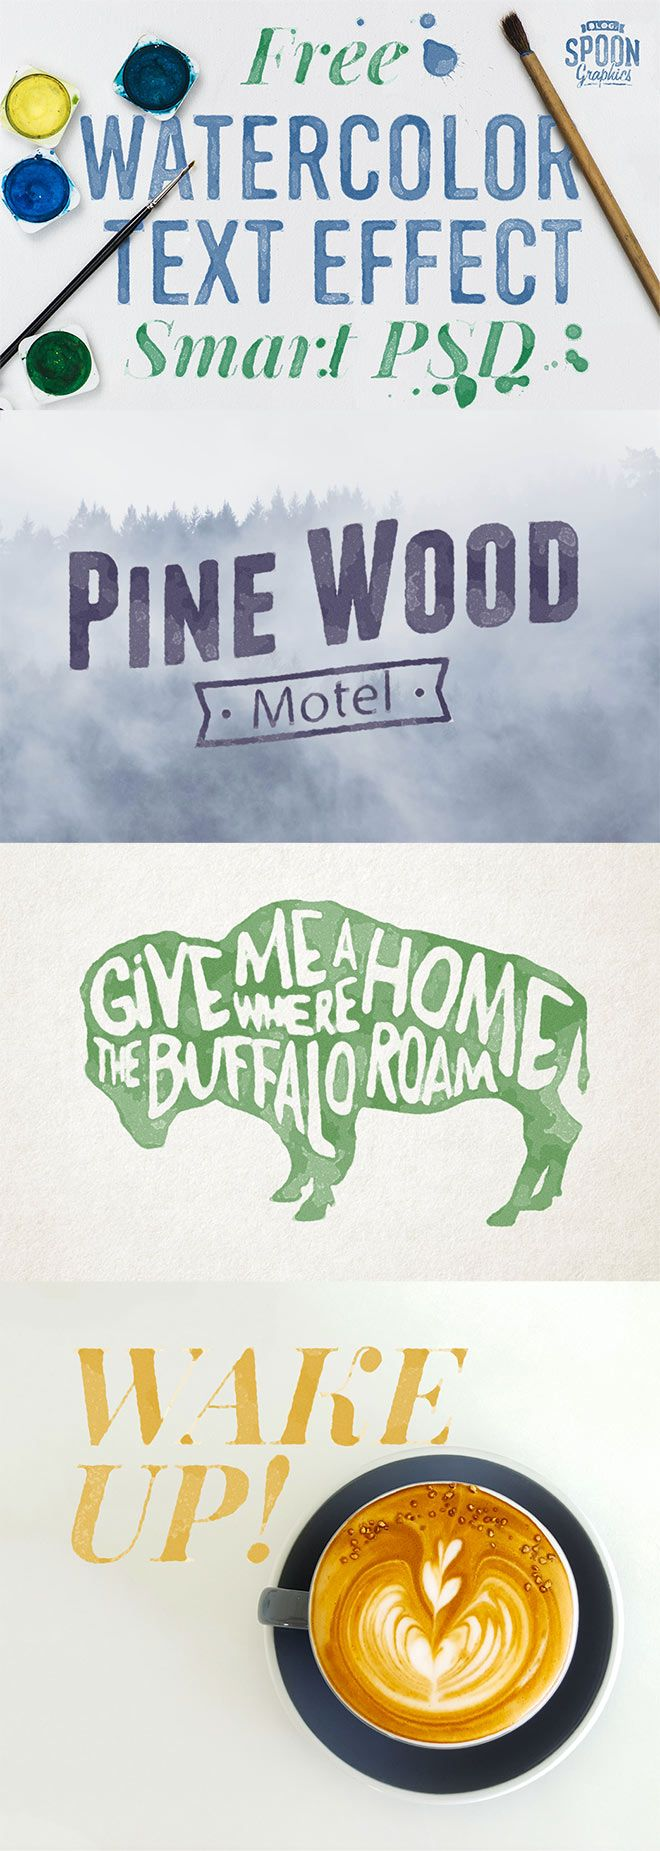 Free Watercolour Text Effect Smart PSD for Adobe Photoshop from Spoongraphics.co.uk